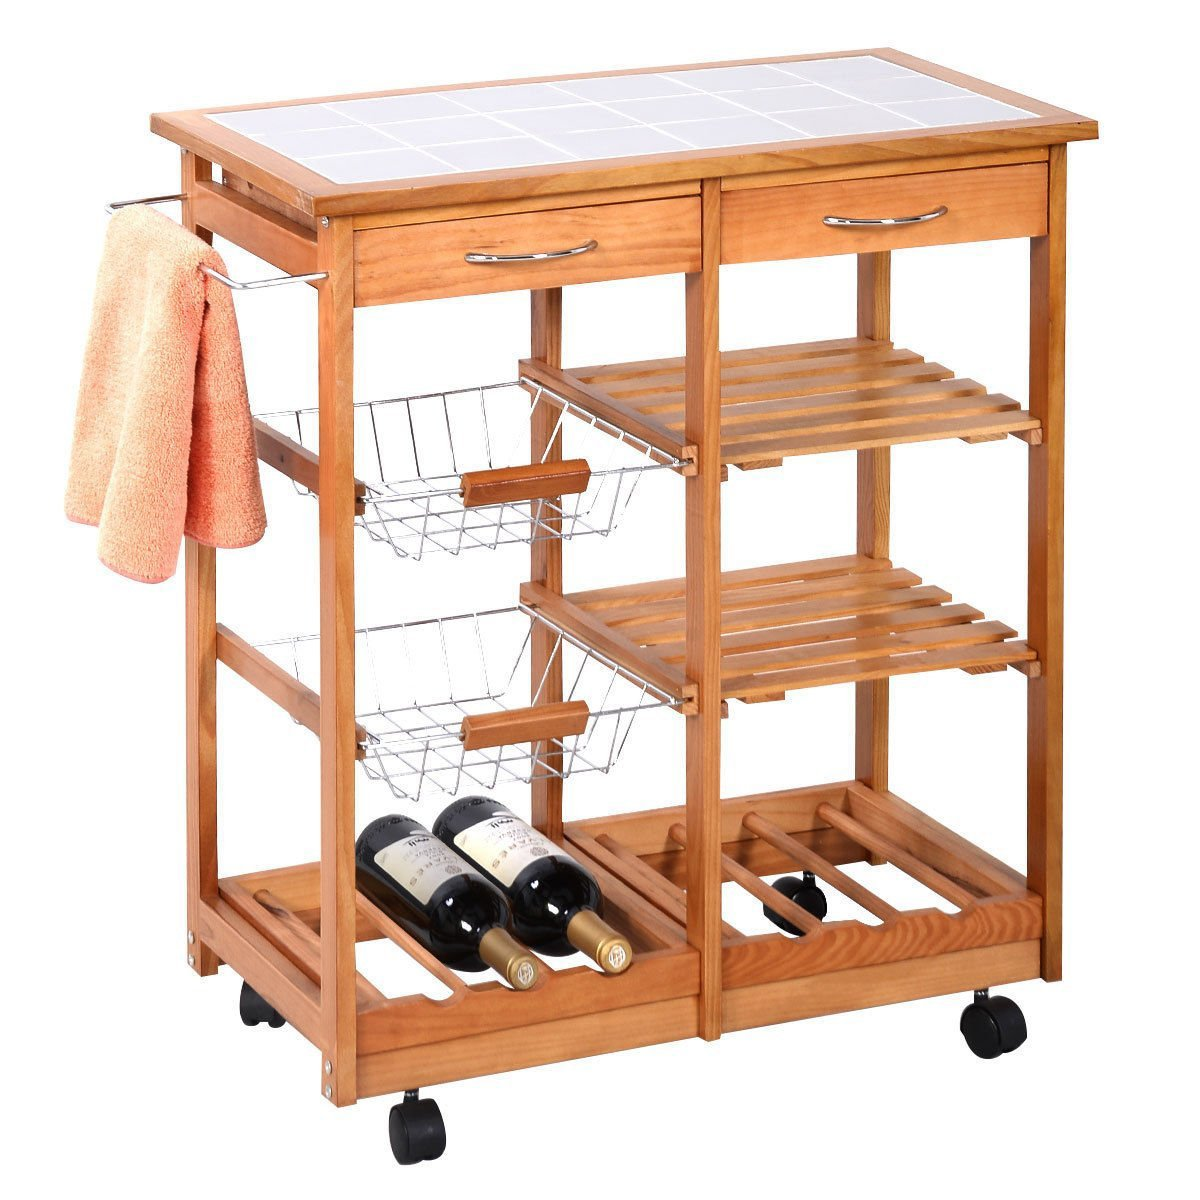 amazon com portable rolling wooden kitchen trolley cart amazon com portable rolling wooden kitchen trolley cart countertop dining storage drawers stand new w 6 bottle wine rack kitchen islands carts